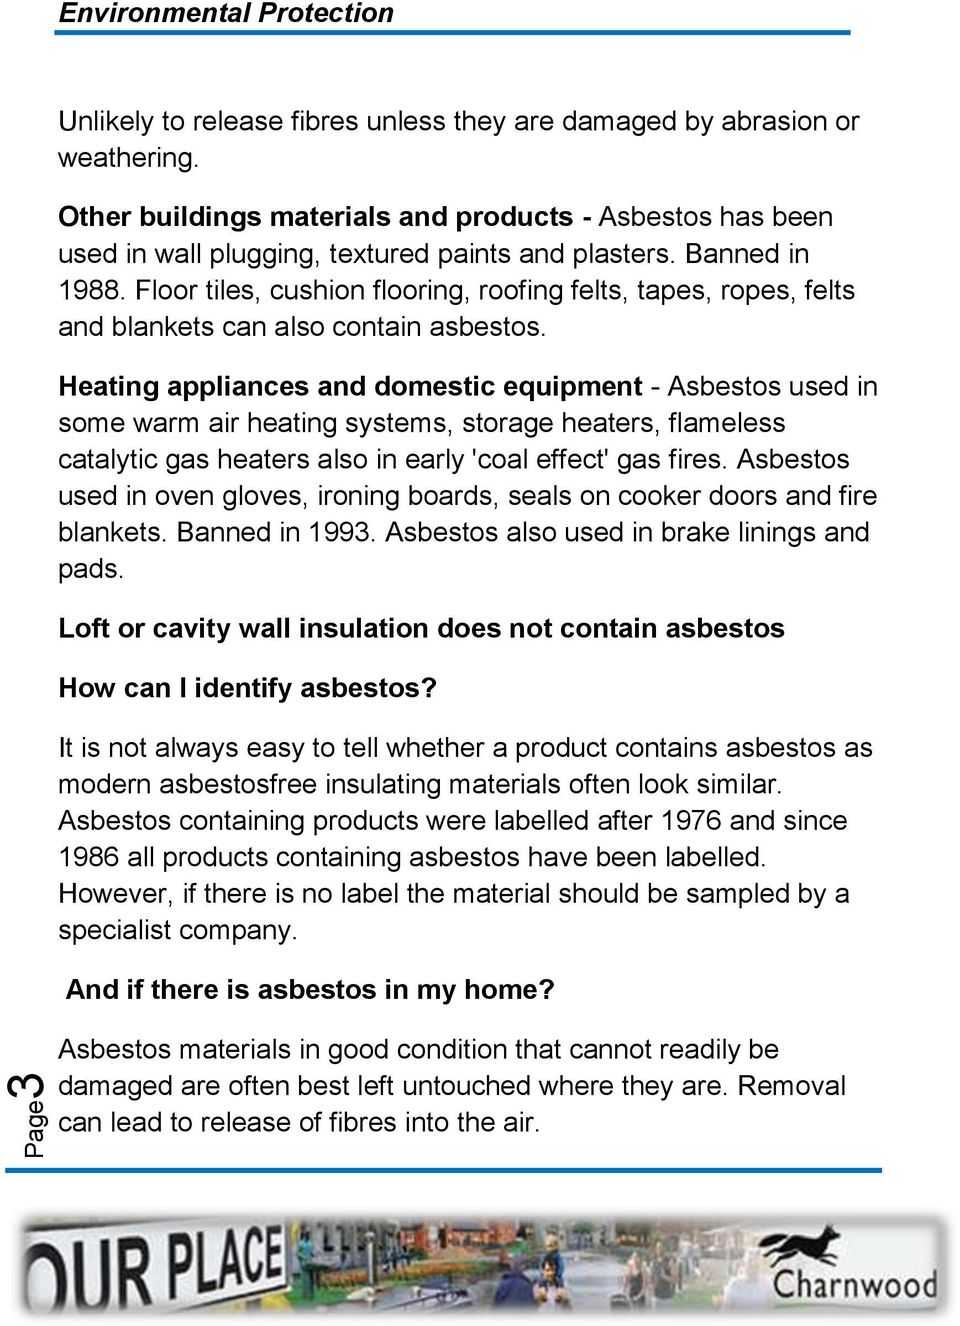 Heating appliances and domestic equipment - Asbestos used in some warm air heating systems, storage heaters, flameless catalytic gas heaters also in early 'coal effect' gas fires.